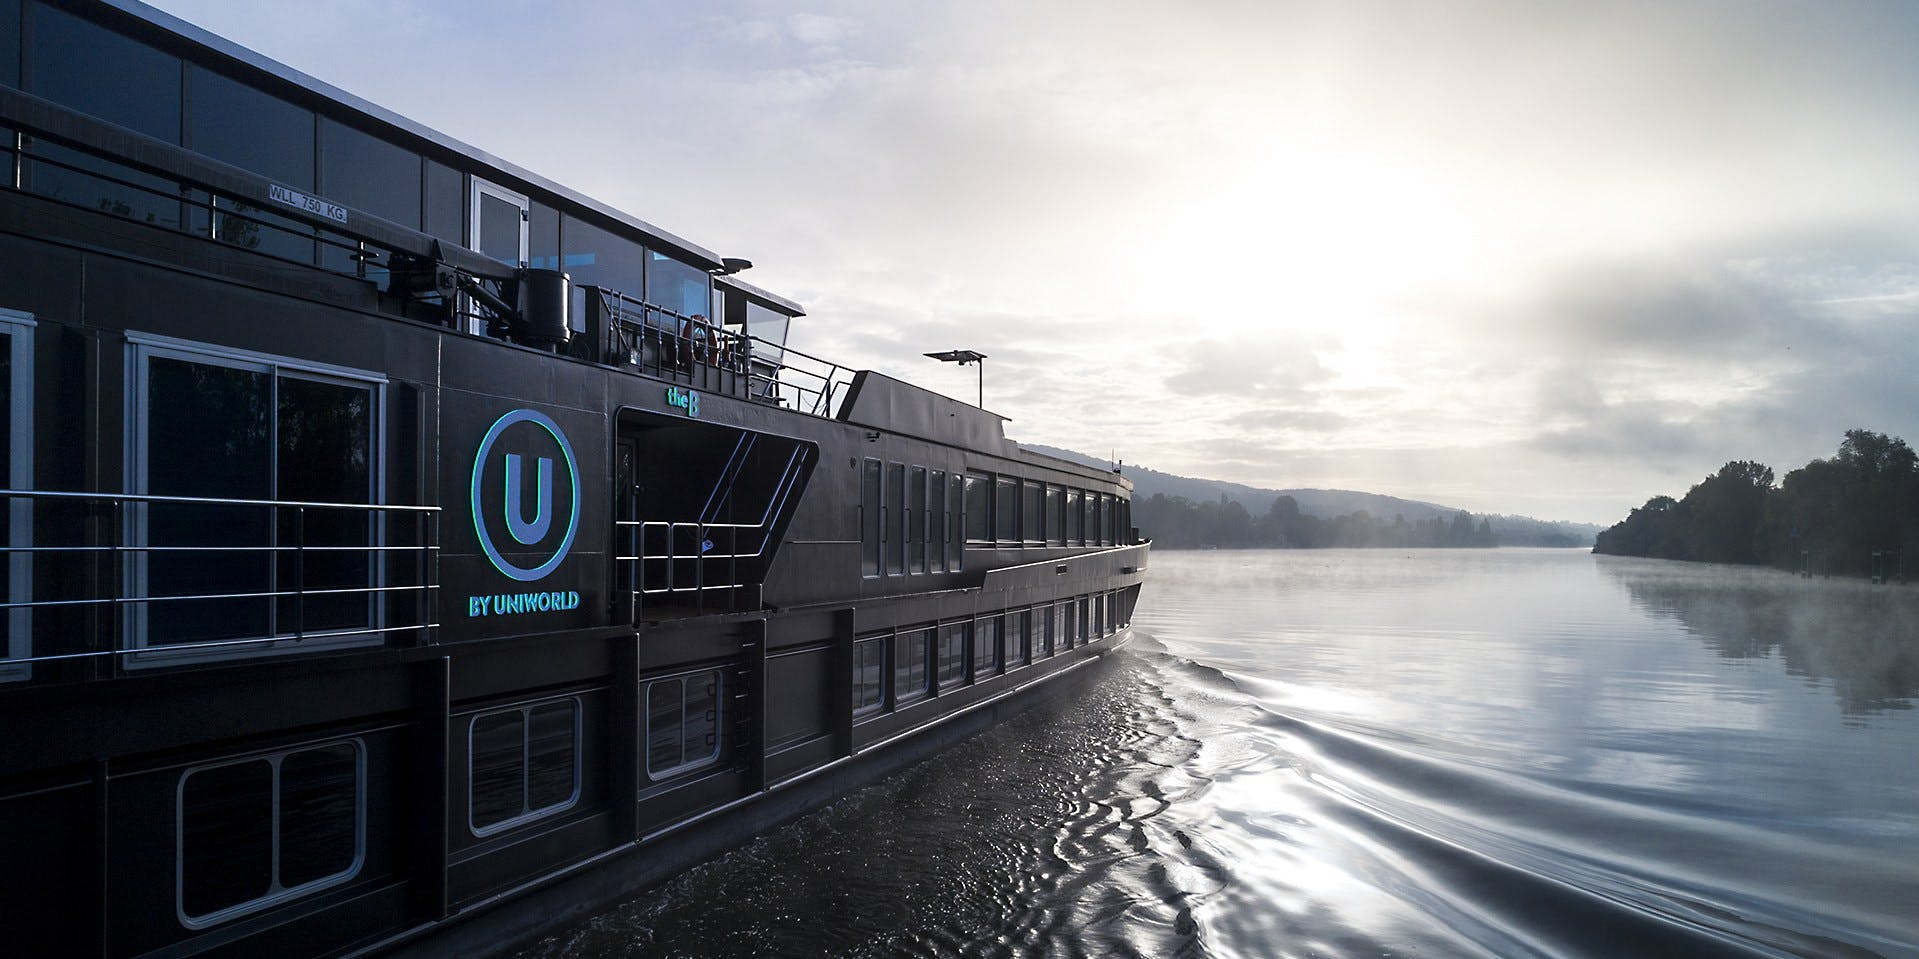 U by Uniworld is the next generation of river cruising.